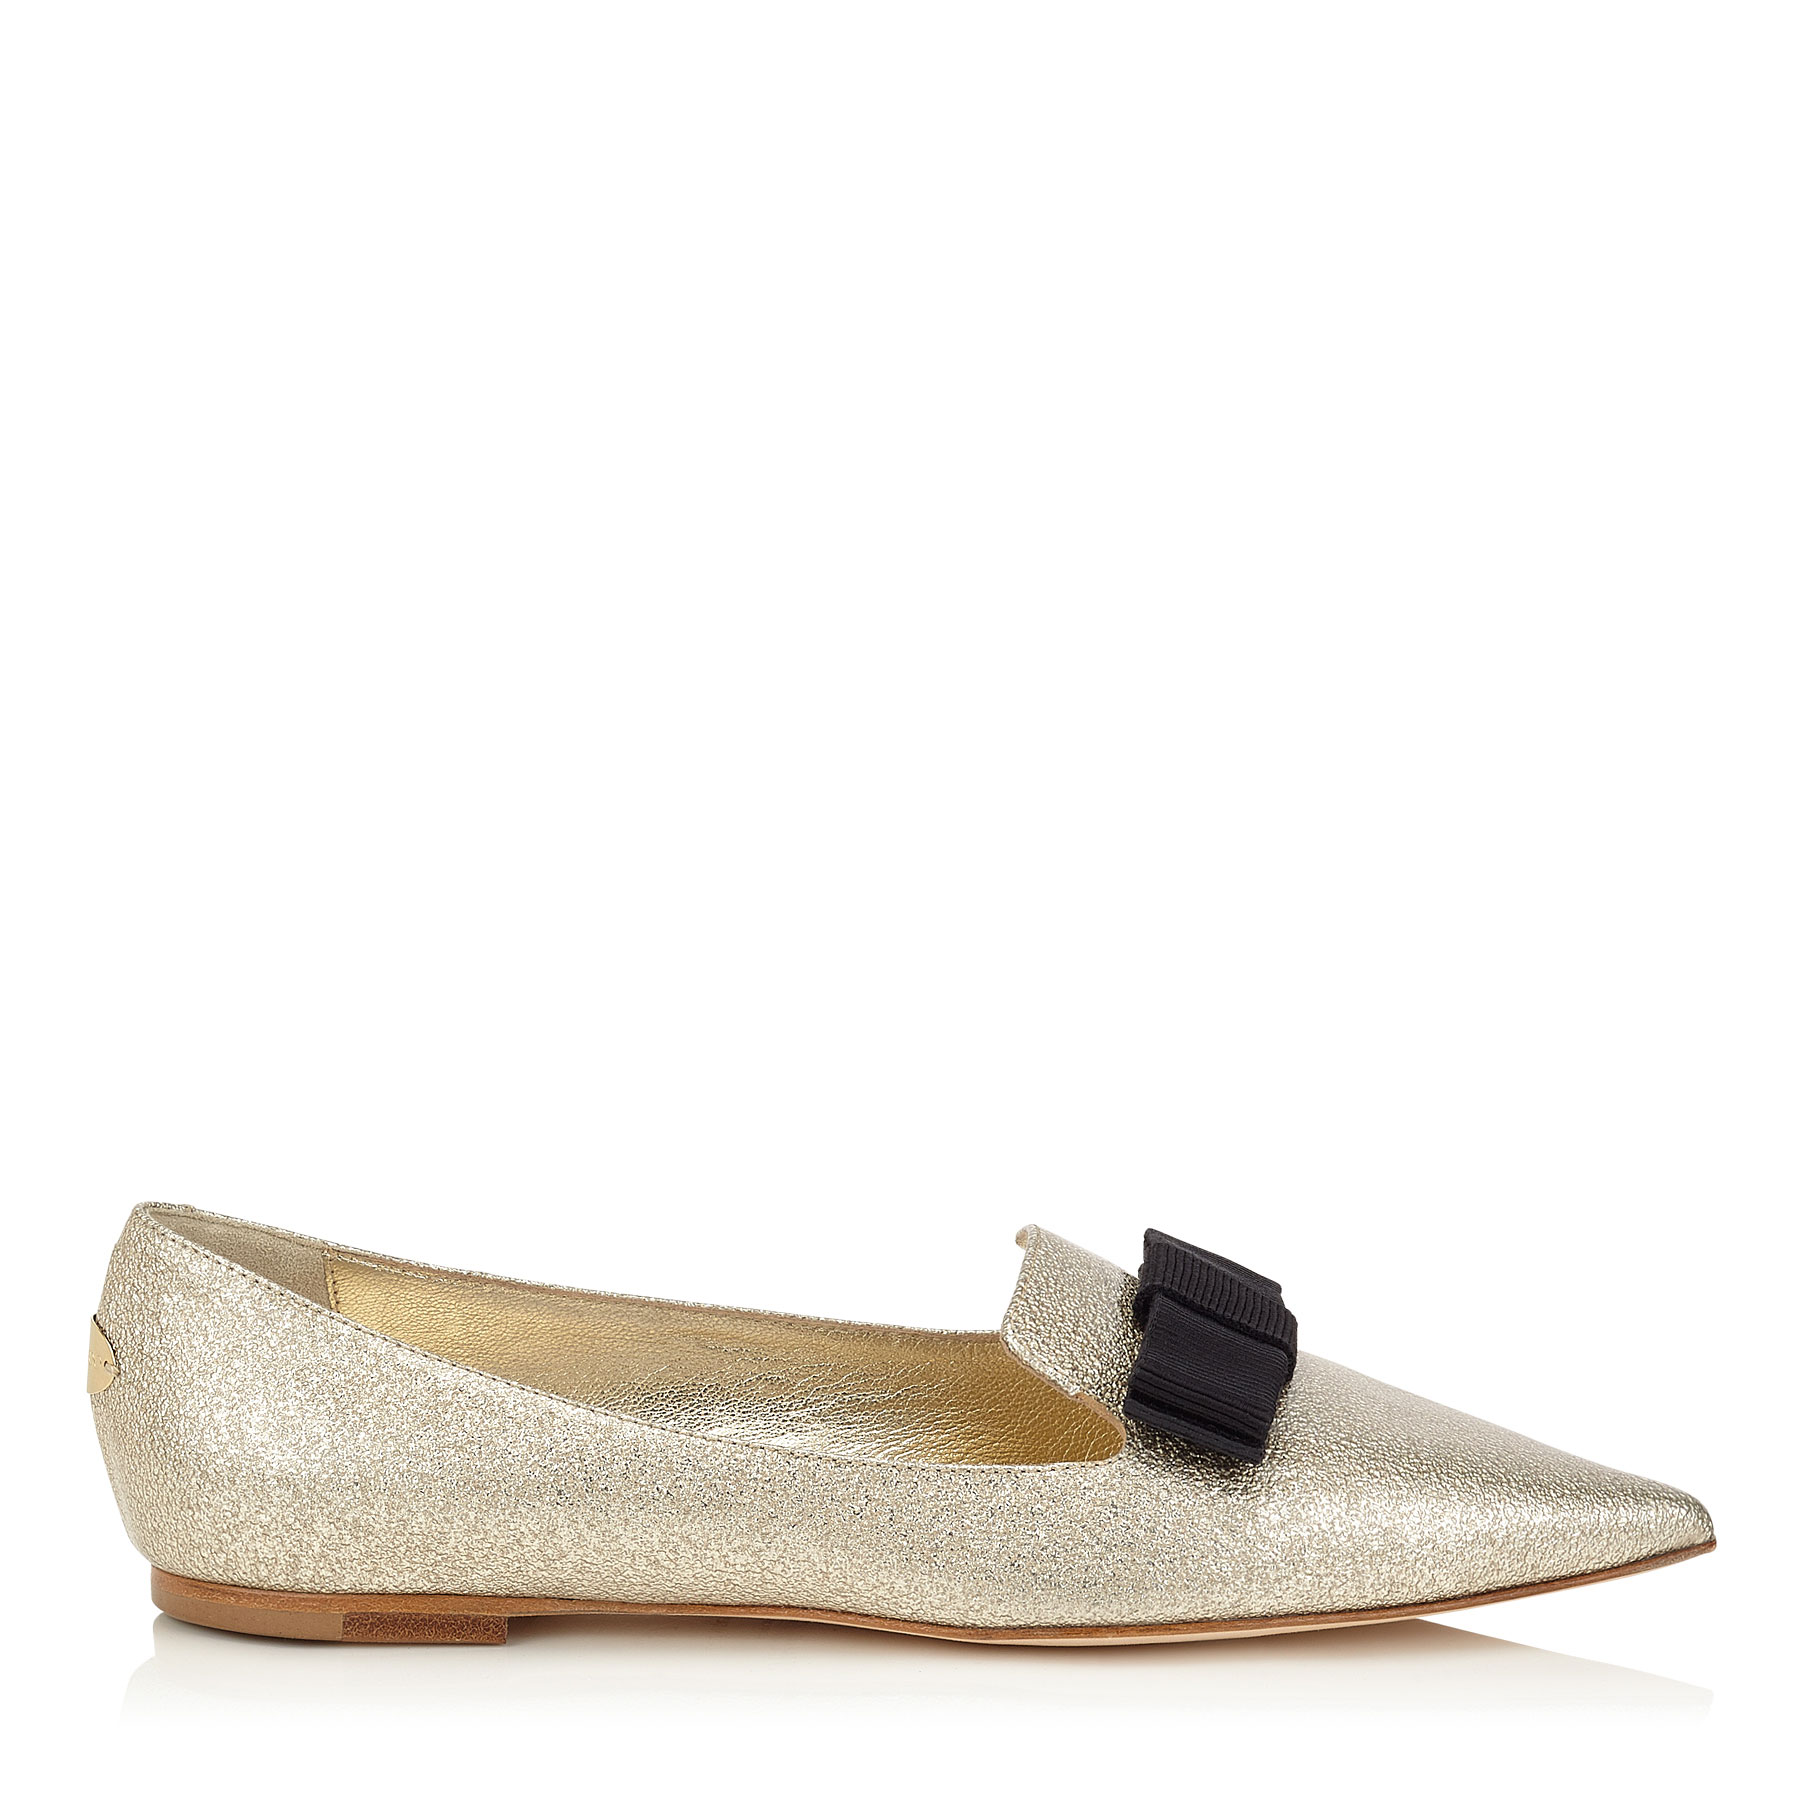 GALA Nude Textured Metallic Patent Pointy Toe Flats with Grosgrain Bow